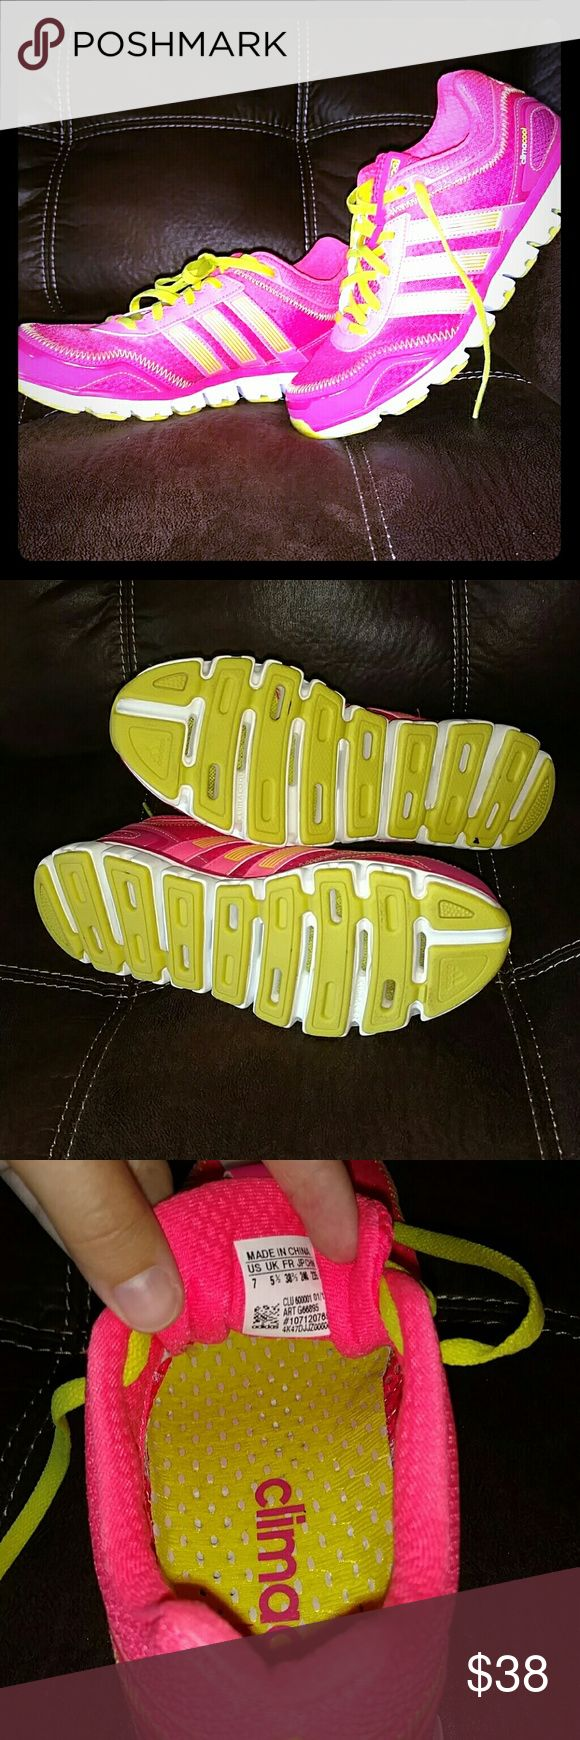 Adidas Climacool Shoes Brand new, worn once, too big for me. Great condition! Adidas Shoes Athletic Shoes